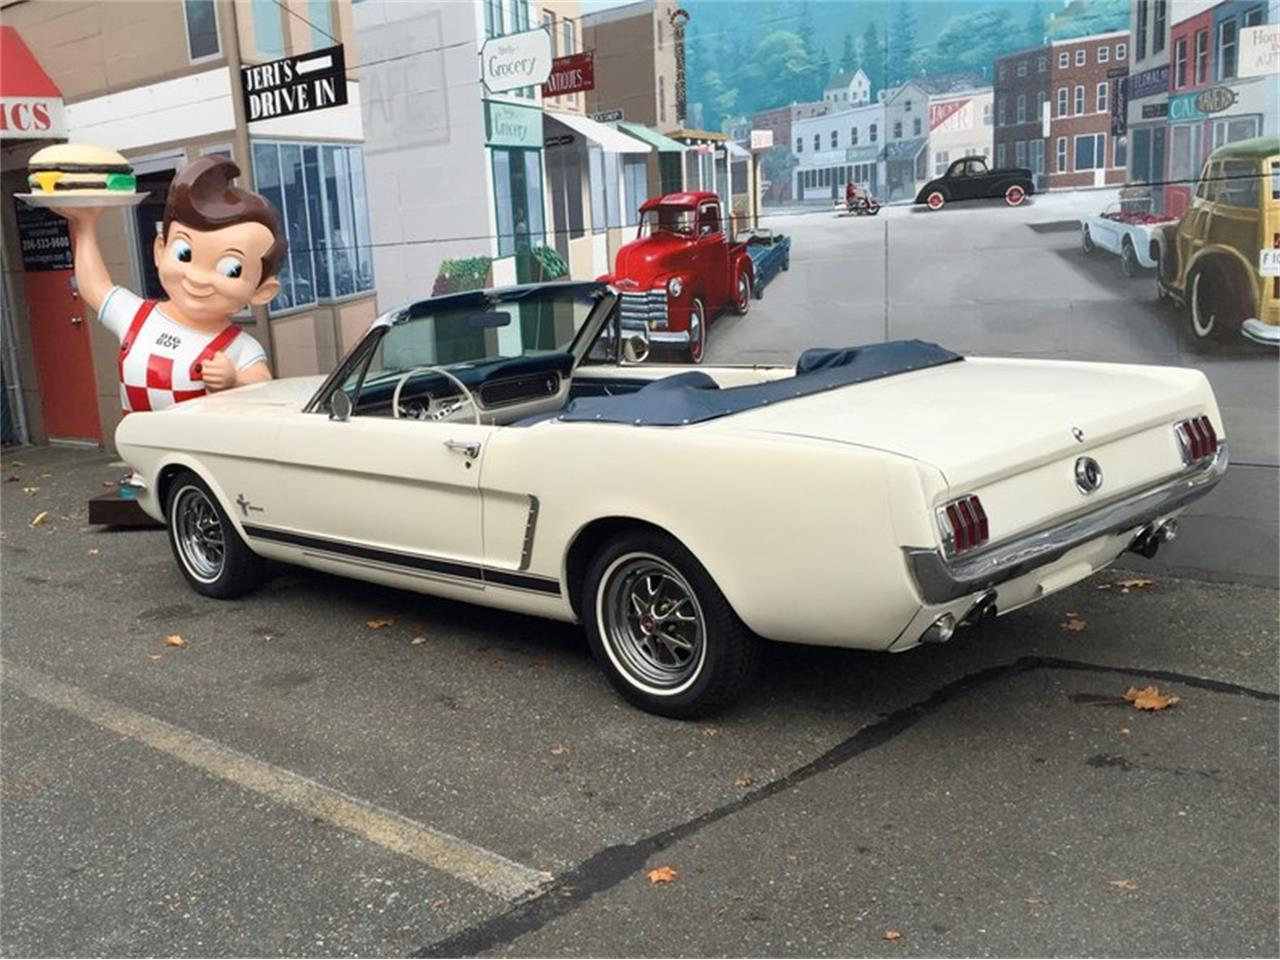 Large Picture of Classic 1964 Ford Mustang located in Seattle Washington Auction Vehicle Offered by Drager's Classics - LDIN